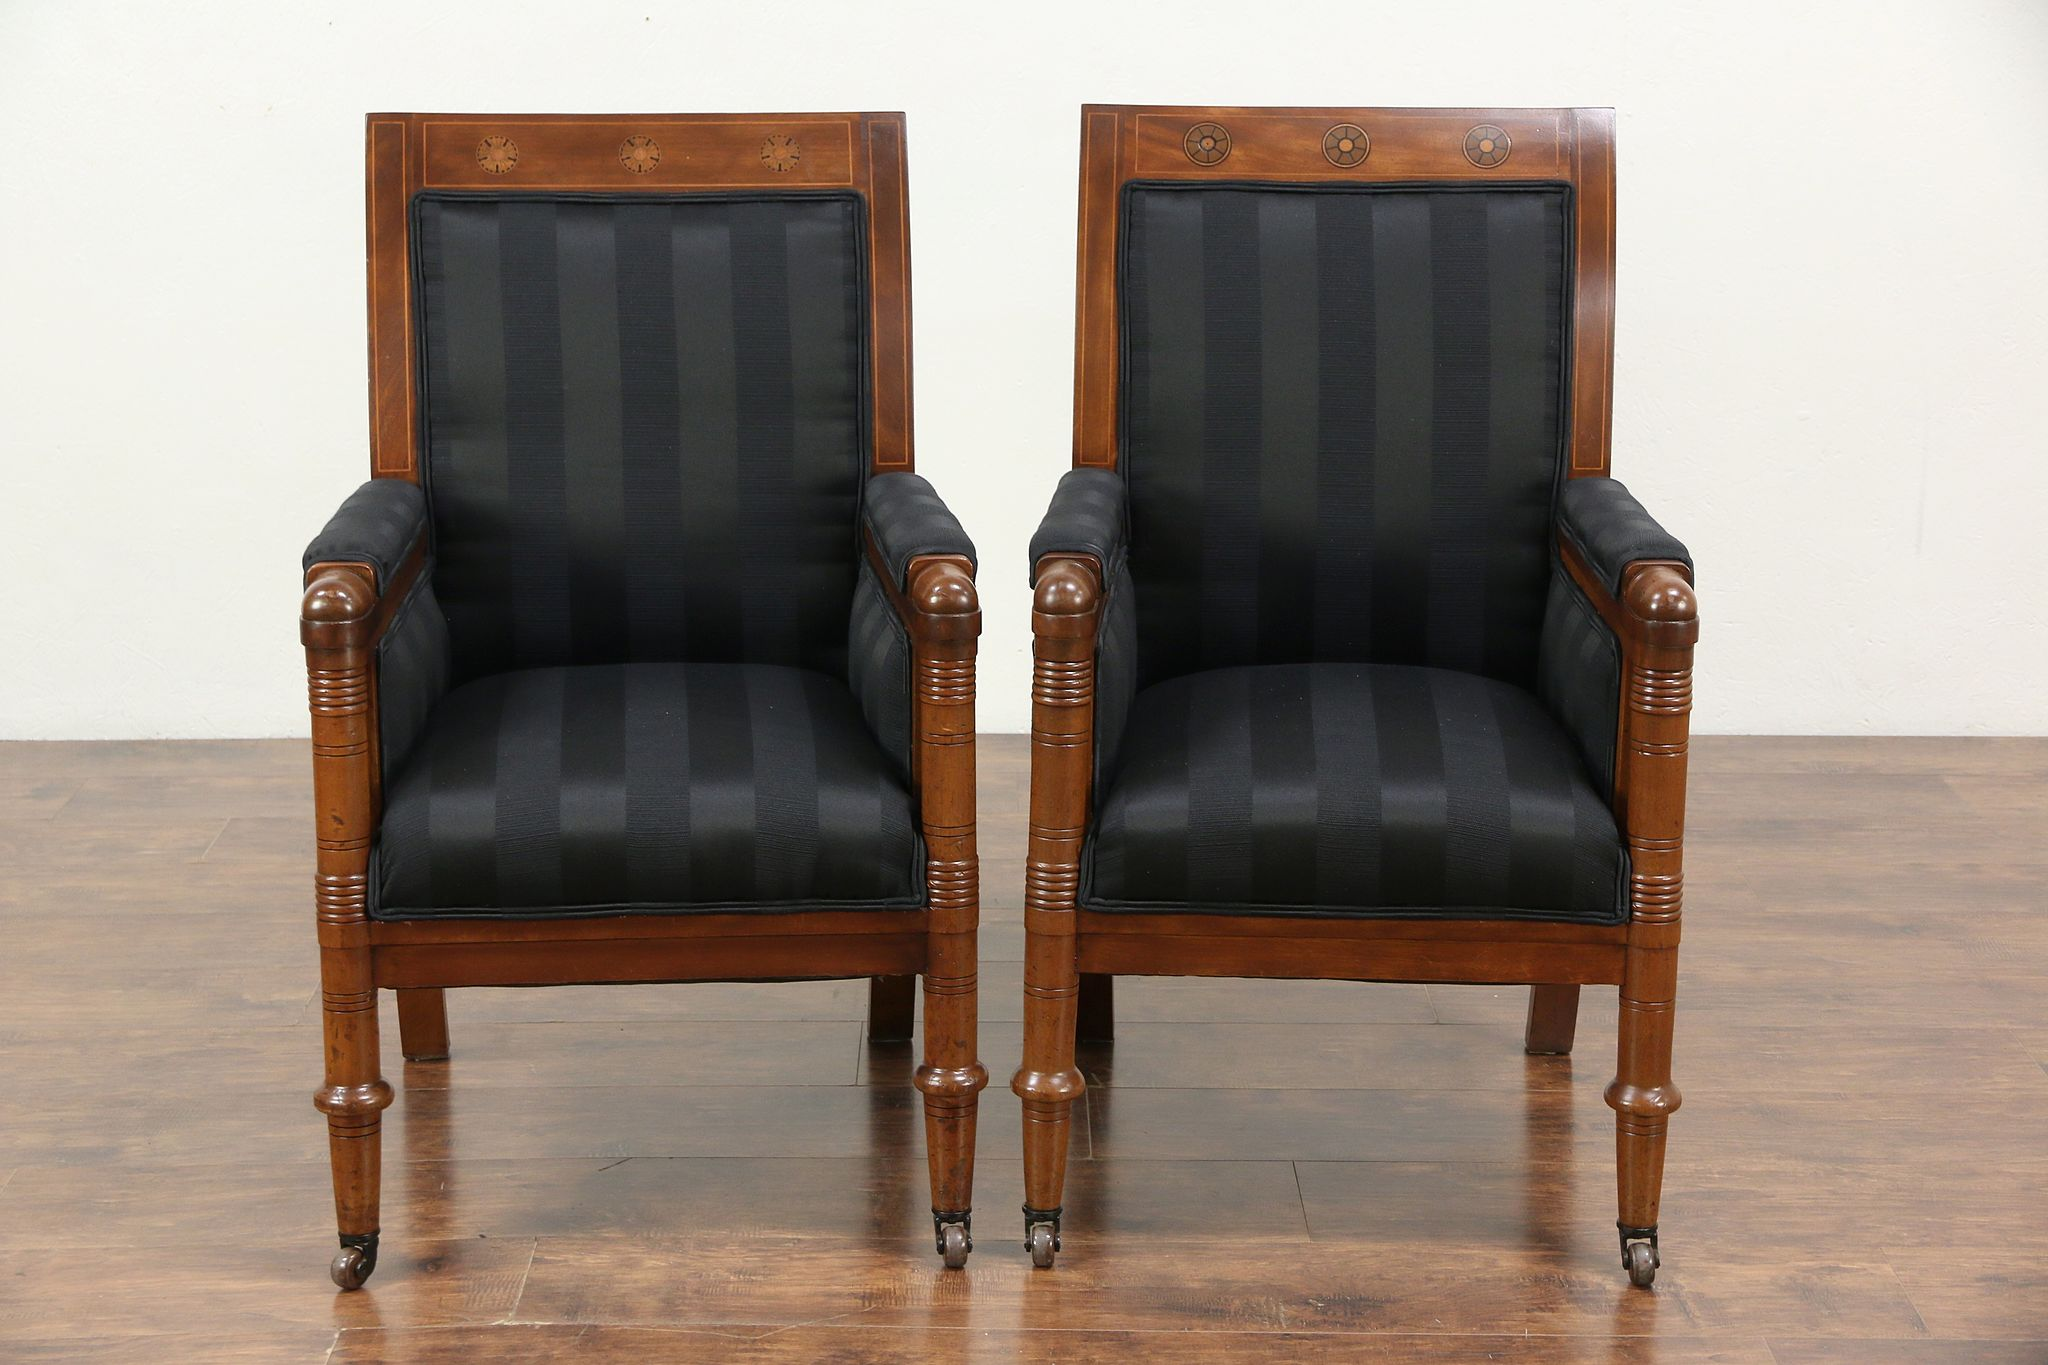 Pair Of Antique 1900 Empire Or Biedermeier Chairs, Denmark, New Upholstery  ...